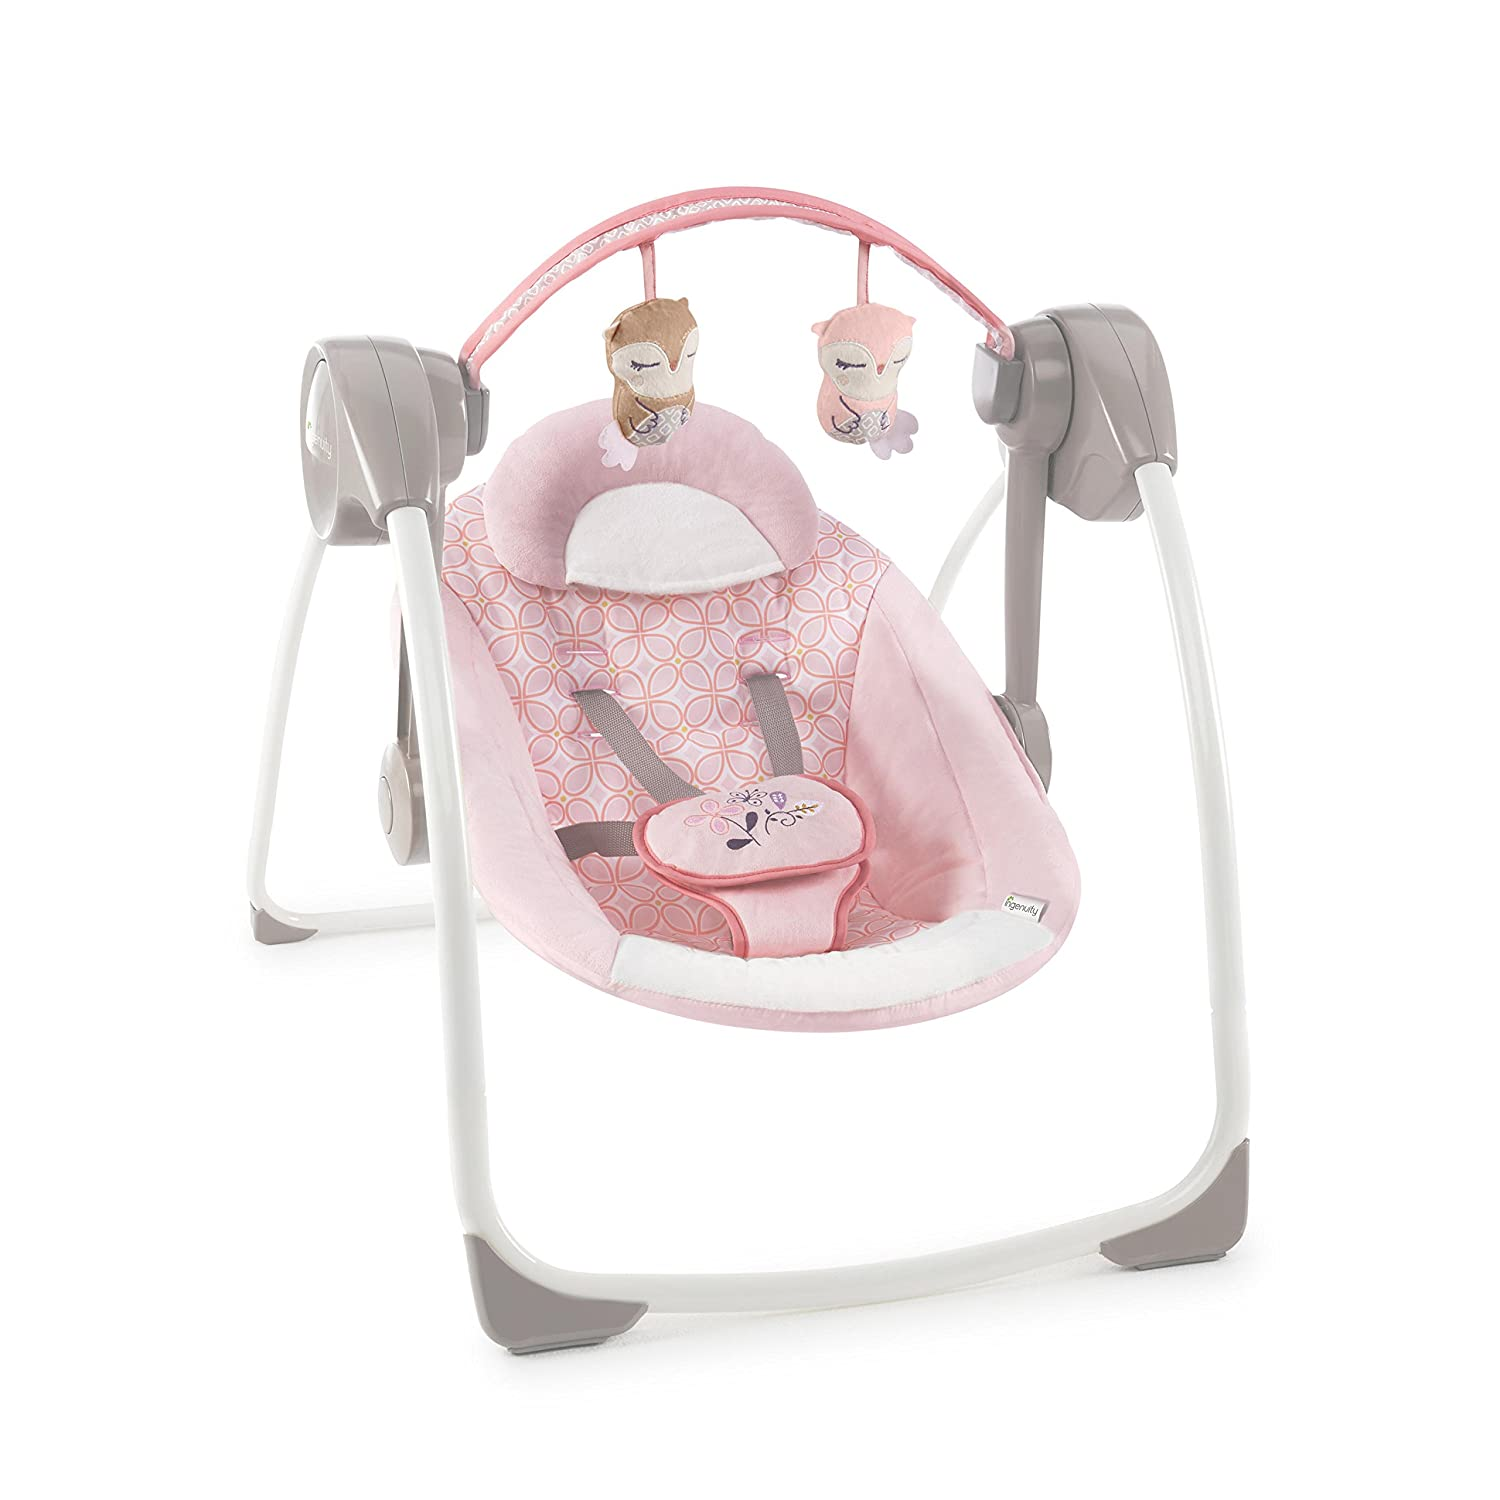 The Top Five Best Swing For Baby: Choose The Best One 14